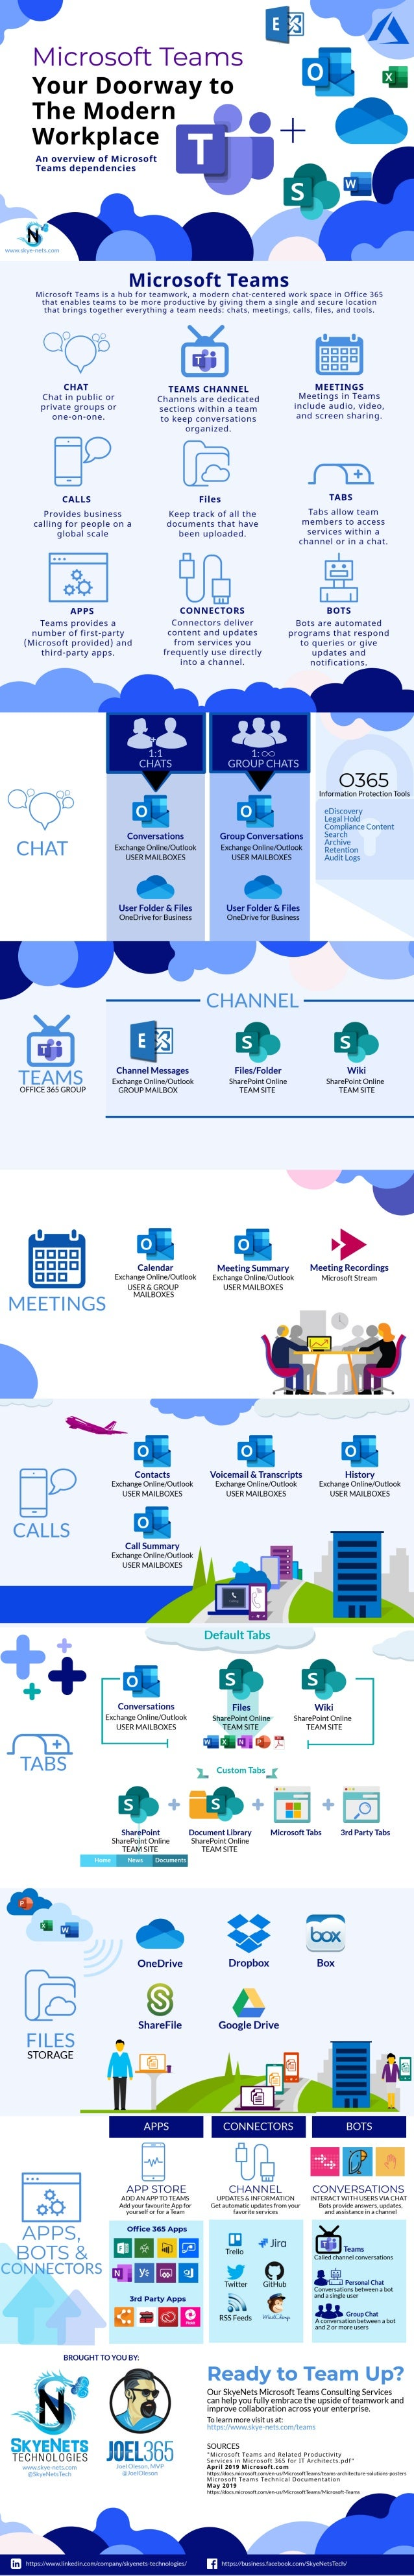 Microsoft Teams Doorway to the Modern Workplace Infographic